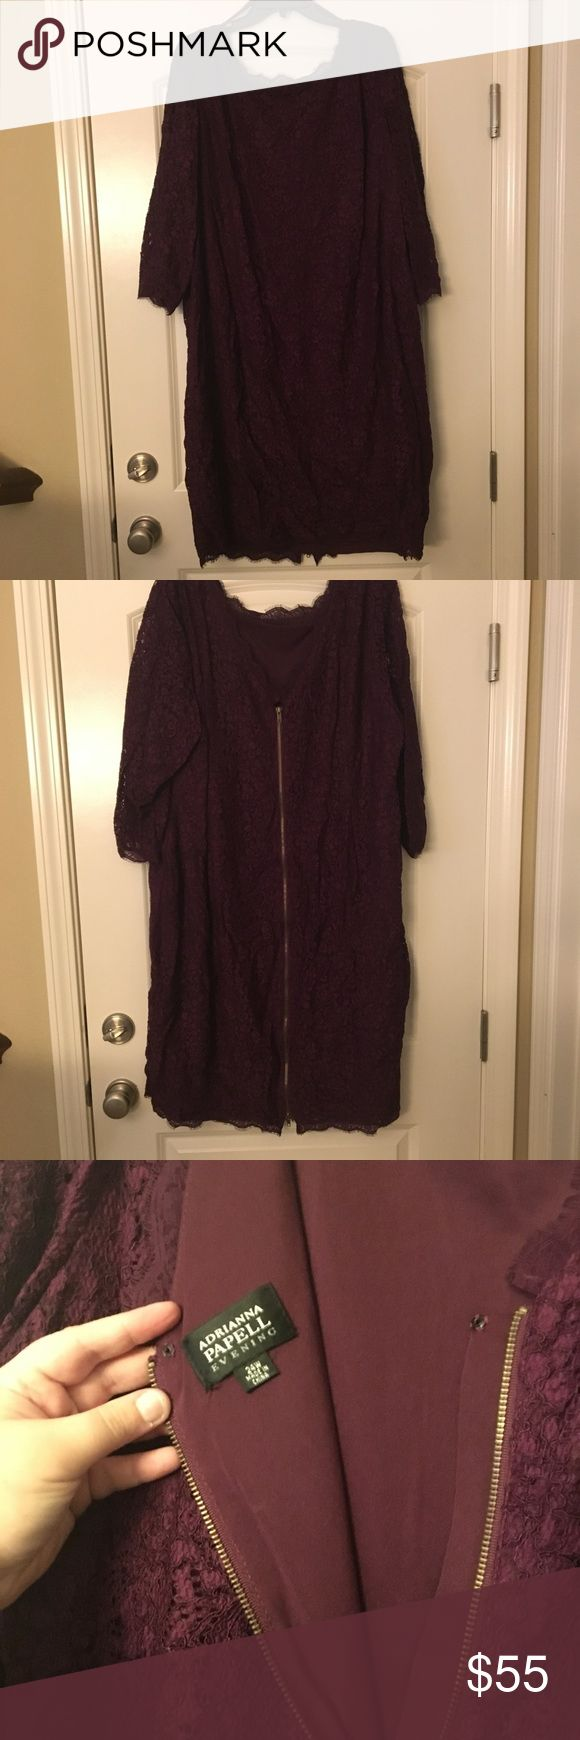 Adrianna Papell Plum Lace Dress Lovely lovely dress! Worn once to a wedding and received a ton of compliments! Full length zipper back. In fantastic condition, just a bit wrinkled from being stored. Adrianna Papell Dresses